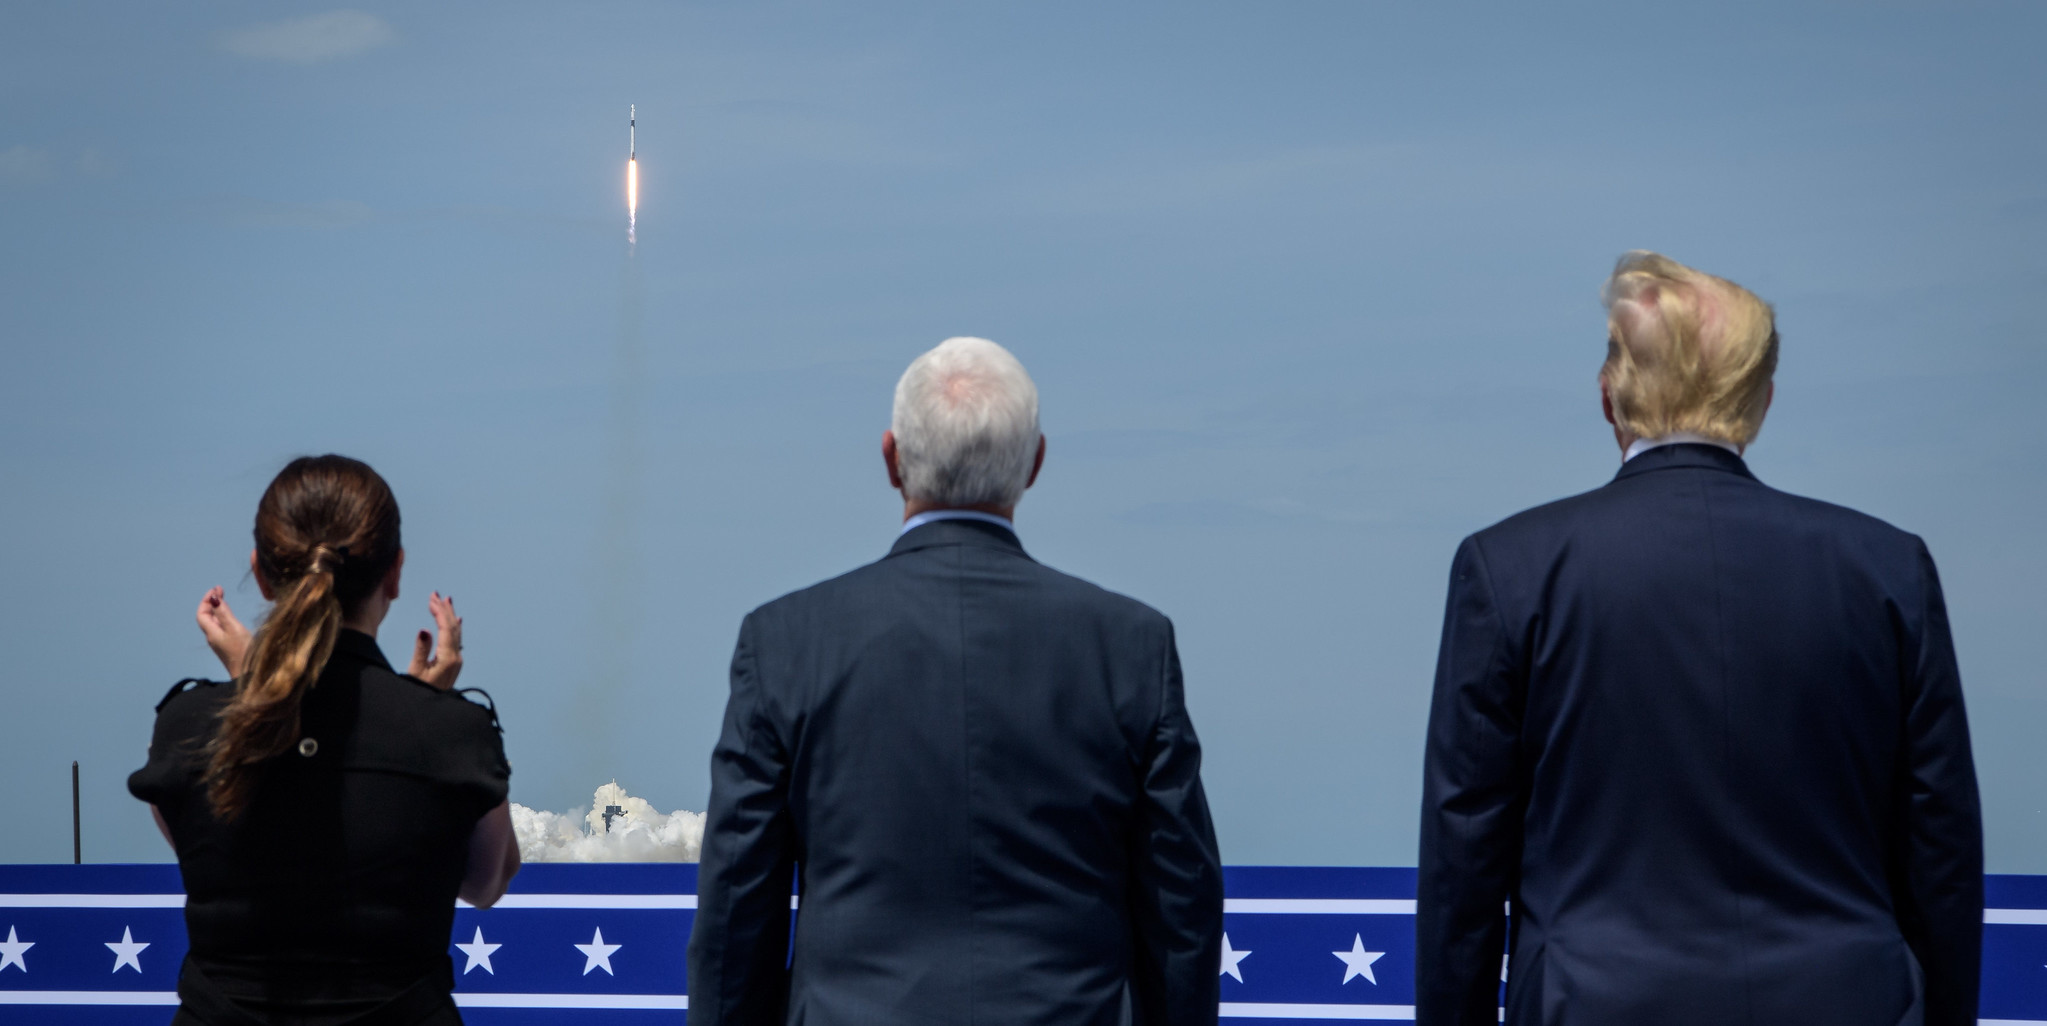 President Donald Trump, right, Vice President Mike Pence, and Second Lady Karen Pence watch the launch of a SpaceX Falcon 9 rocket carrying the company's Crew Dragon spacecraft on NASA's SpaceX Demo-2 mission with NASA astronauts Robert Behnken and Douglas Hurley onboard, Saturday, May 30, 2020, from the balcony of Operations Support Building II at NASA's Kennedy Space Center in Florida.